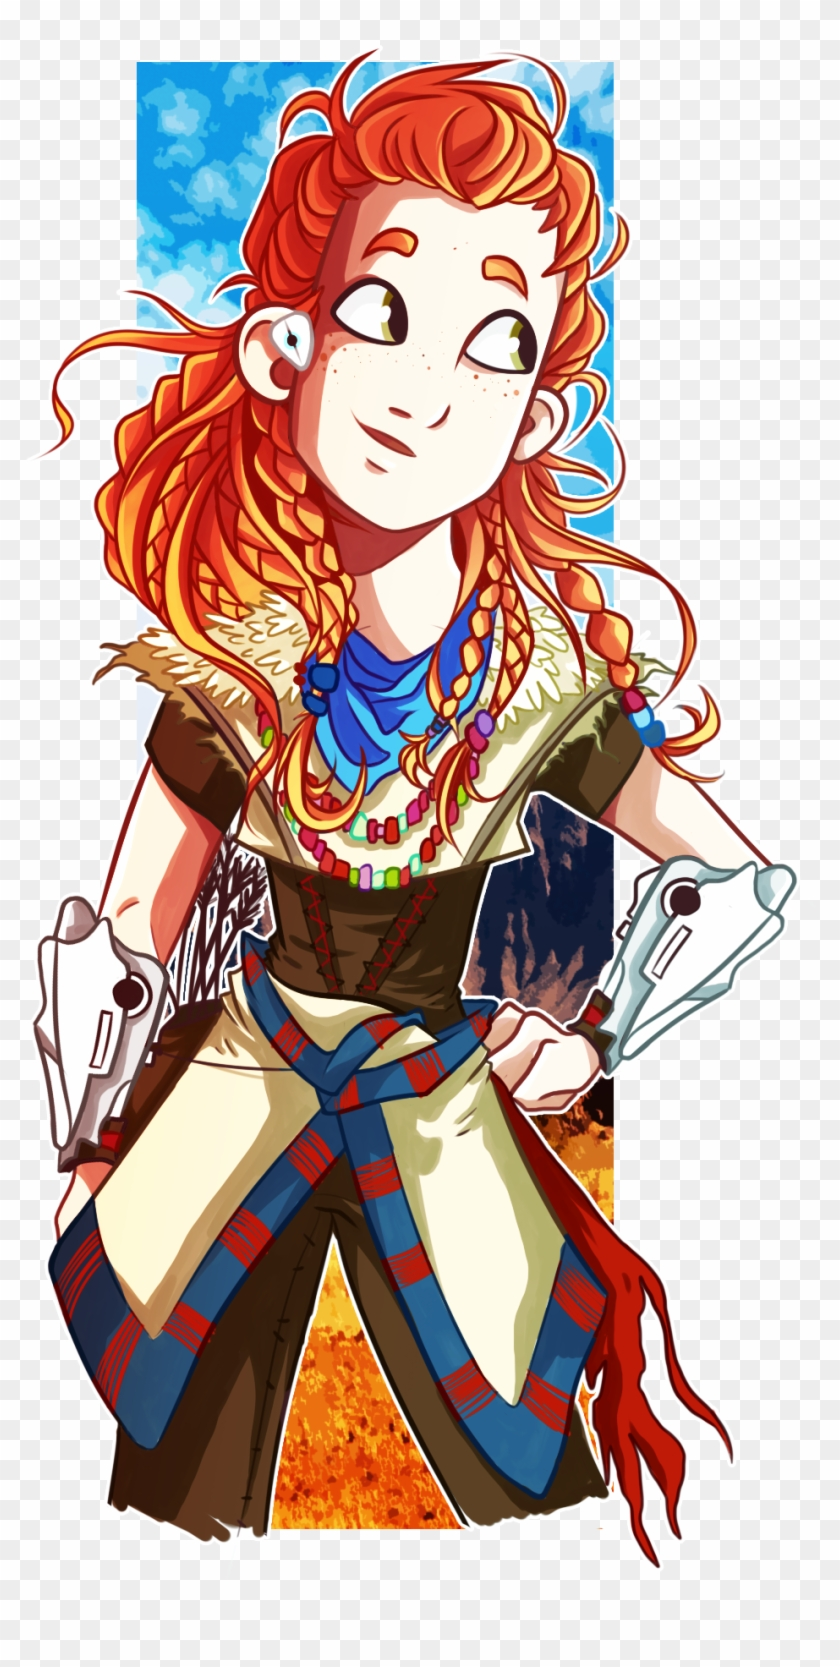 Aloy hzd clipart graphic free download Horizon Zero Dawn, First Person Shooter, Fanart, Geek - Aloy En ... graphic free download